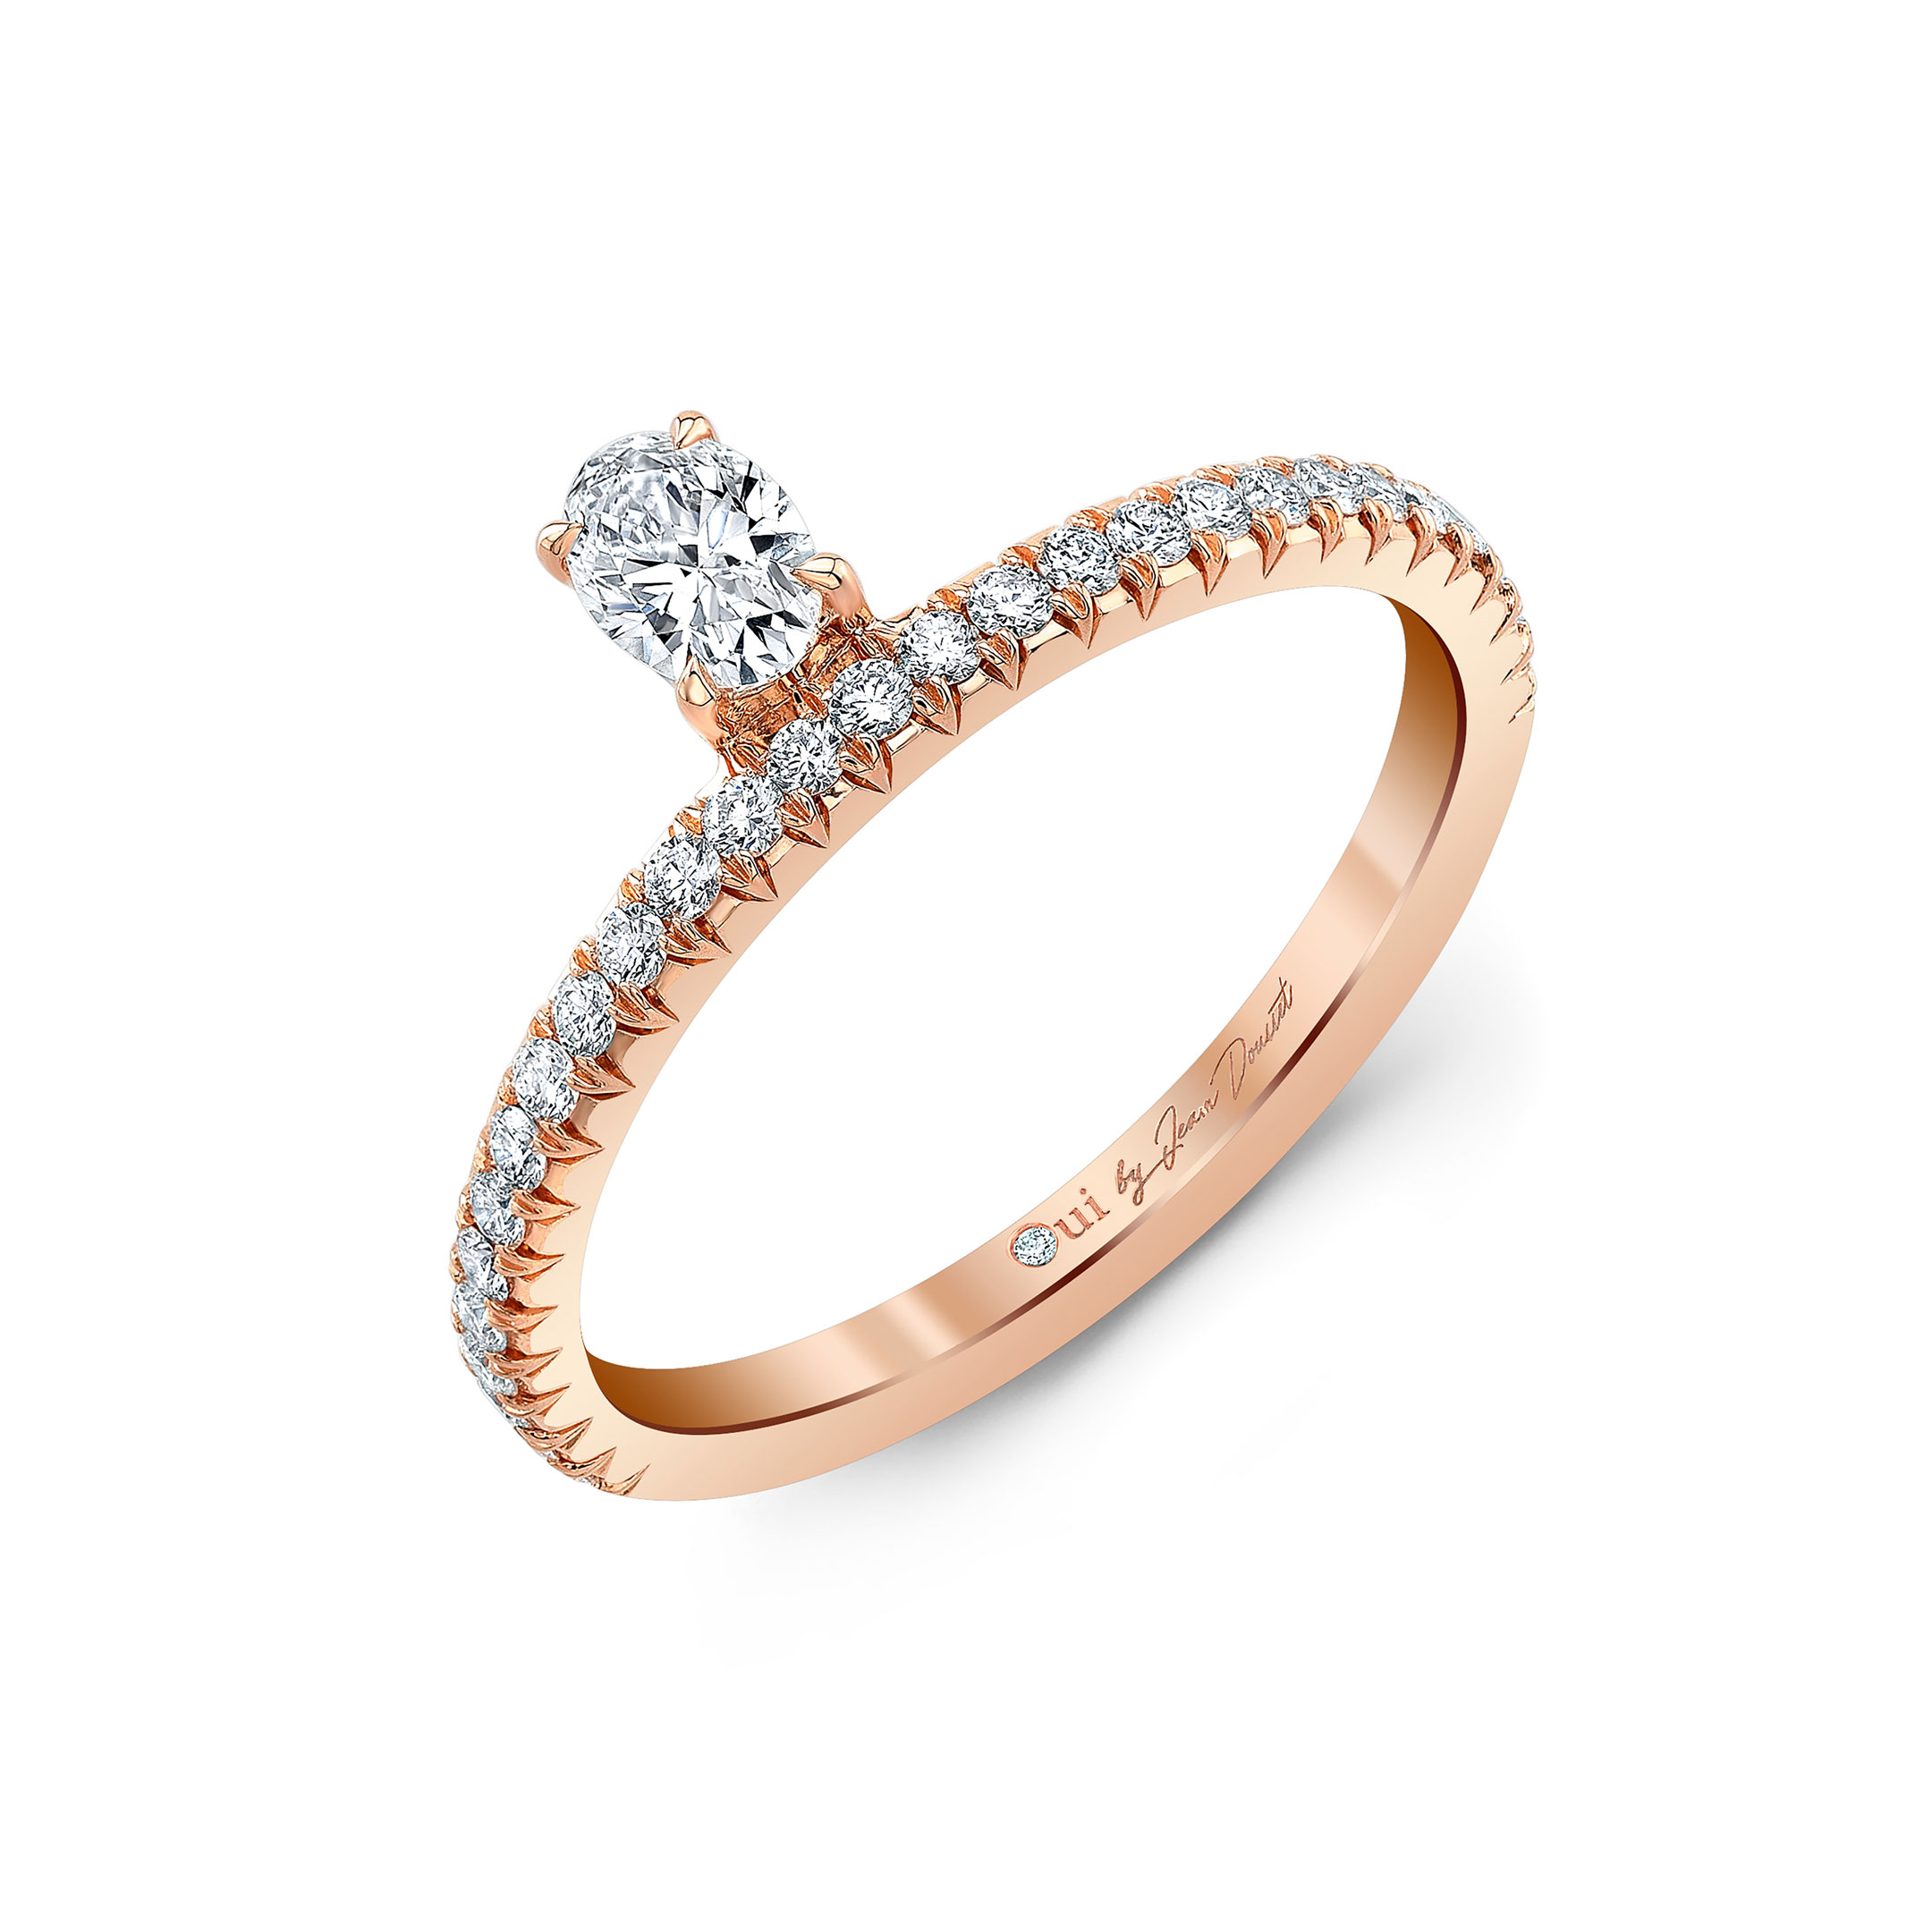 Eloise Floating Oval Diamond Ring in 18k Rose Gold Profile View by Oui by Jean Dousset